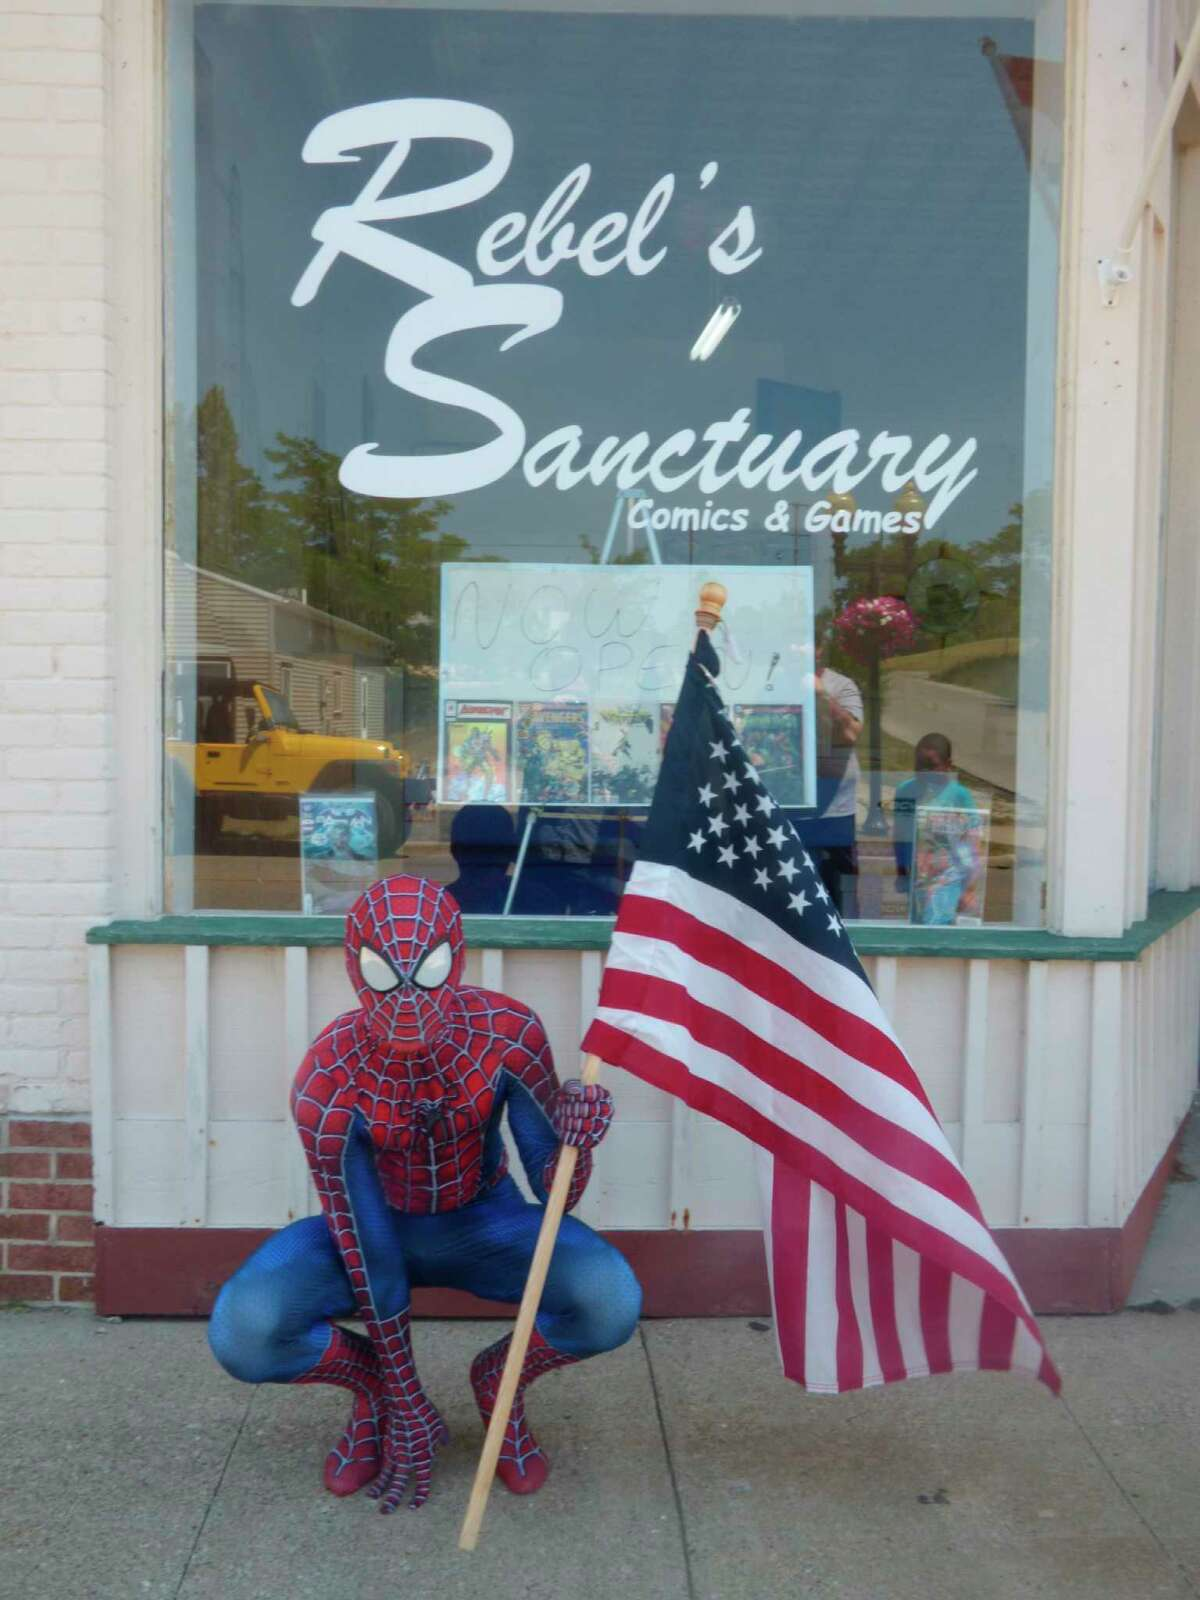 Rebel's Sanctuary in Manistee is hosting a Free Comic Book Day event on Aug. 14. (File Photo)